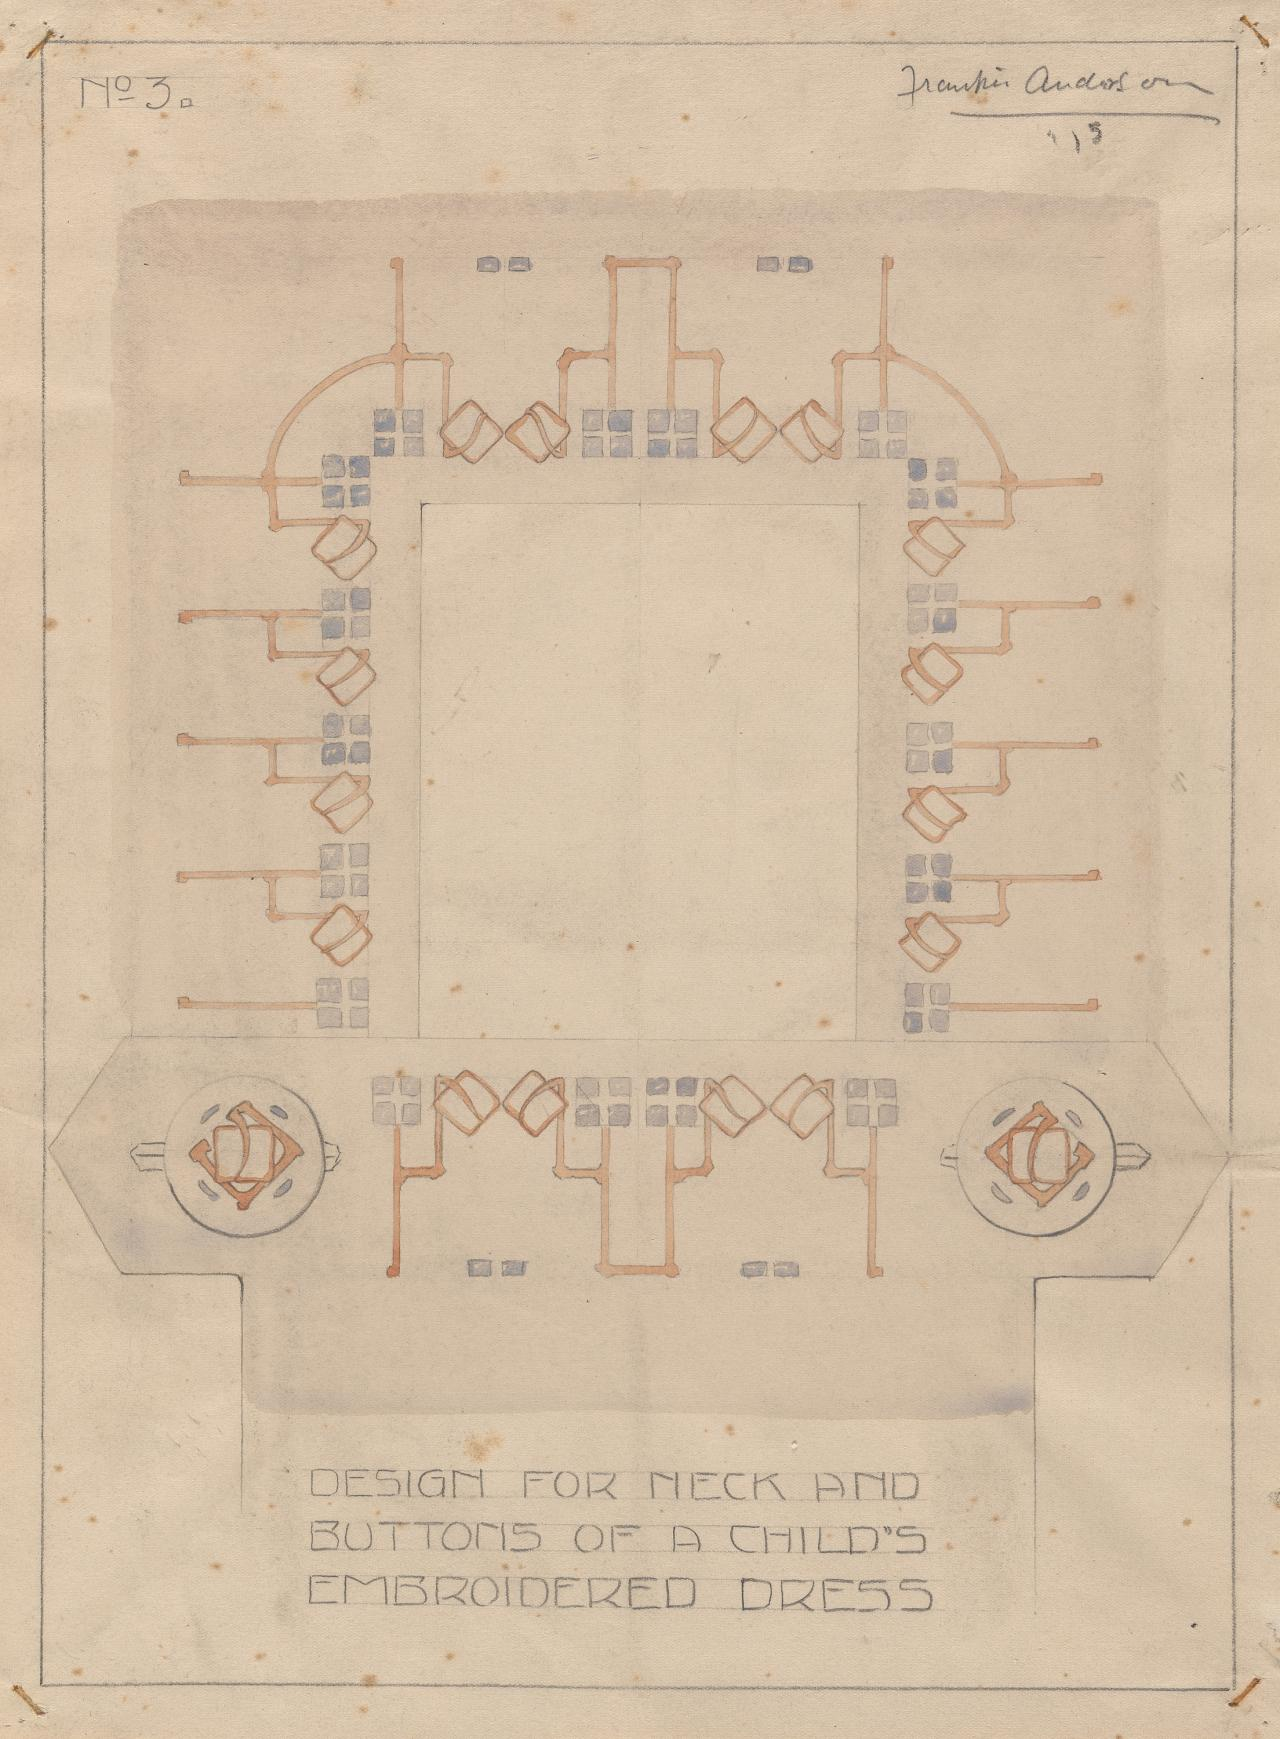 Design for neck and buttons of a child's embroidered dress